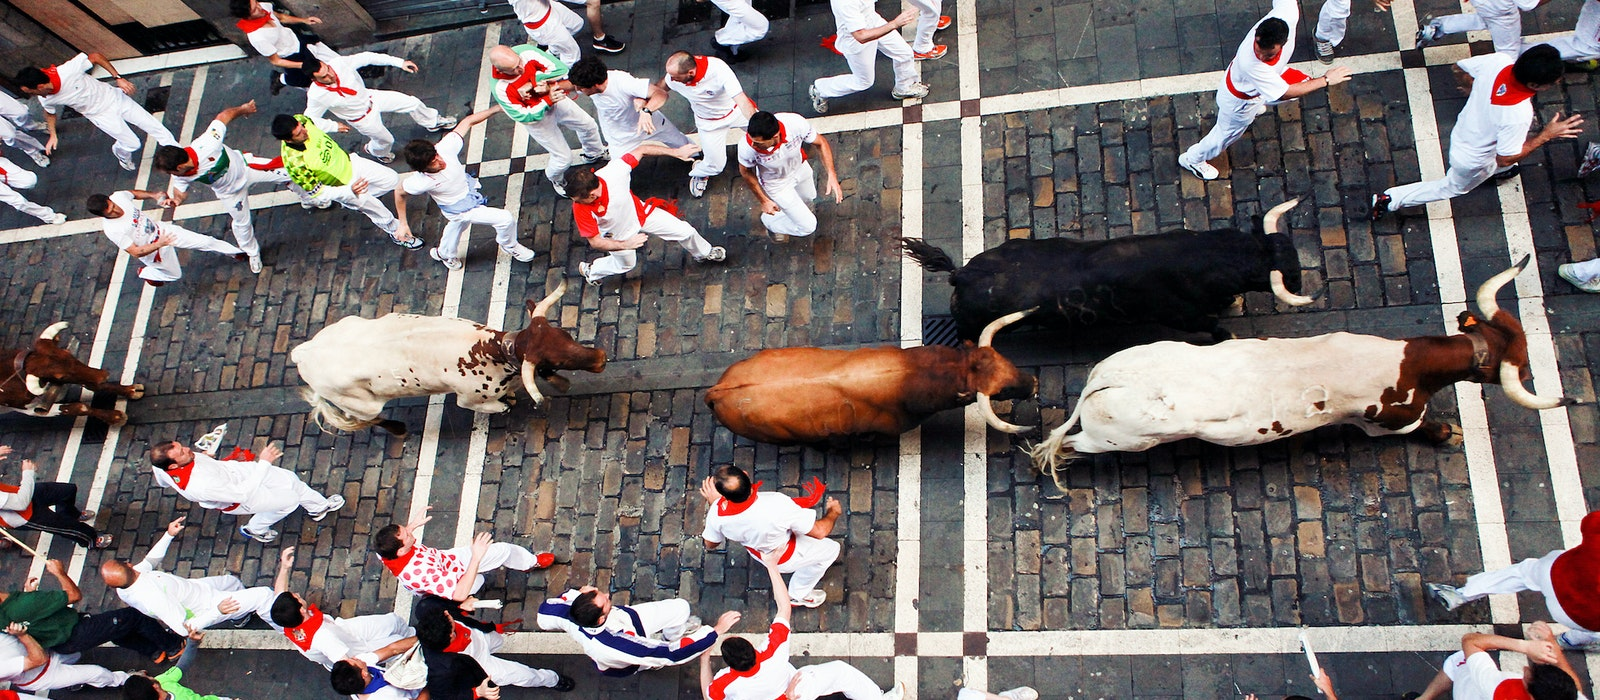 The Fiesta de San Fermín in Pamplona, Spain, is famous for its controversial bull-running tradition.